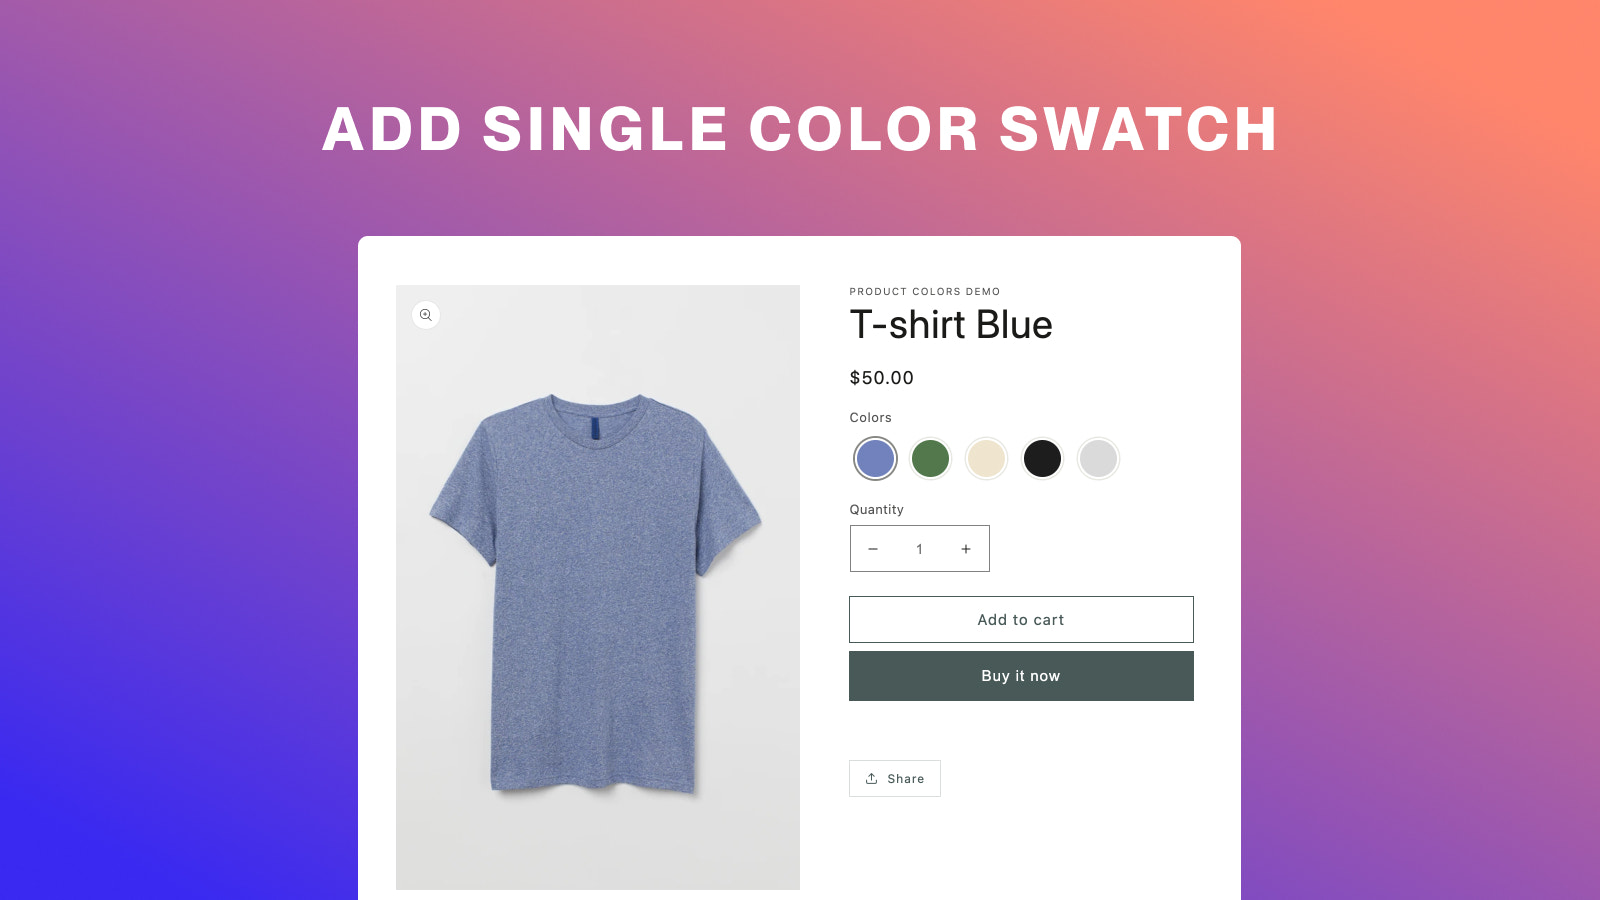 Add single color swatch